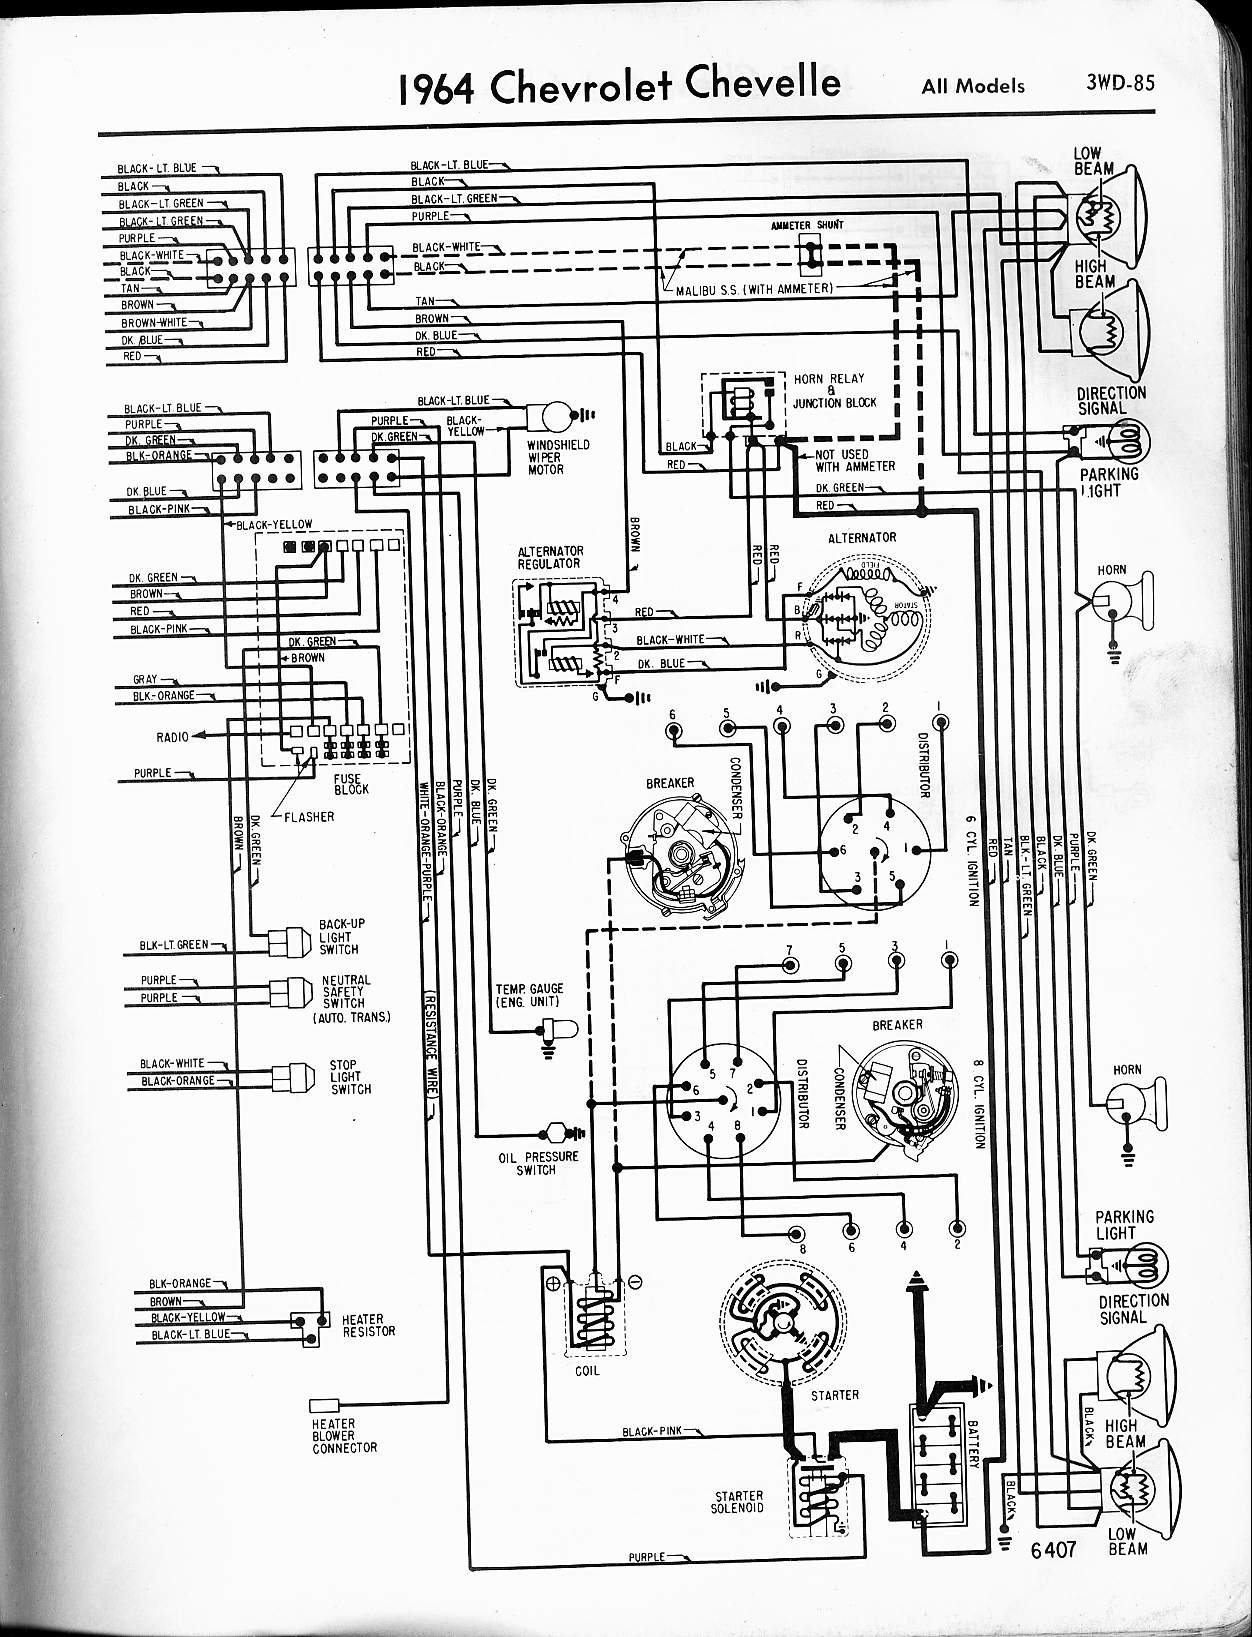 1970 El Camino Ss Dash Wiring Diagram Modern Design Of Gmc Pickup Diagrams Chevy Rh Wizard Com 72 Chevelle